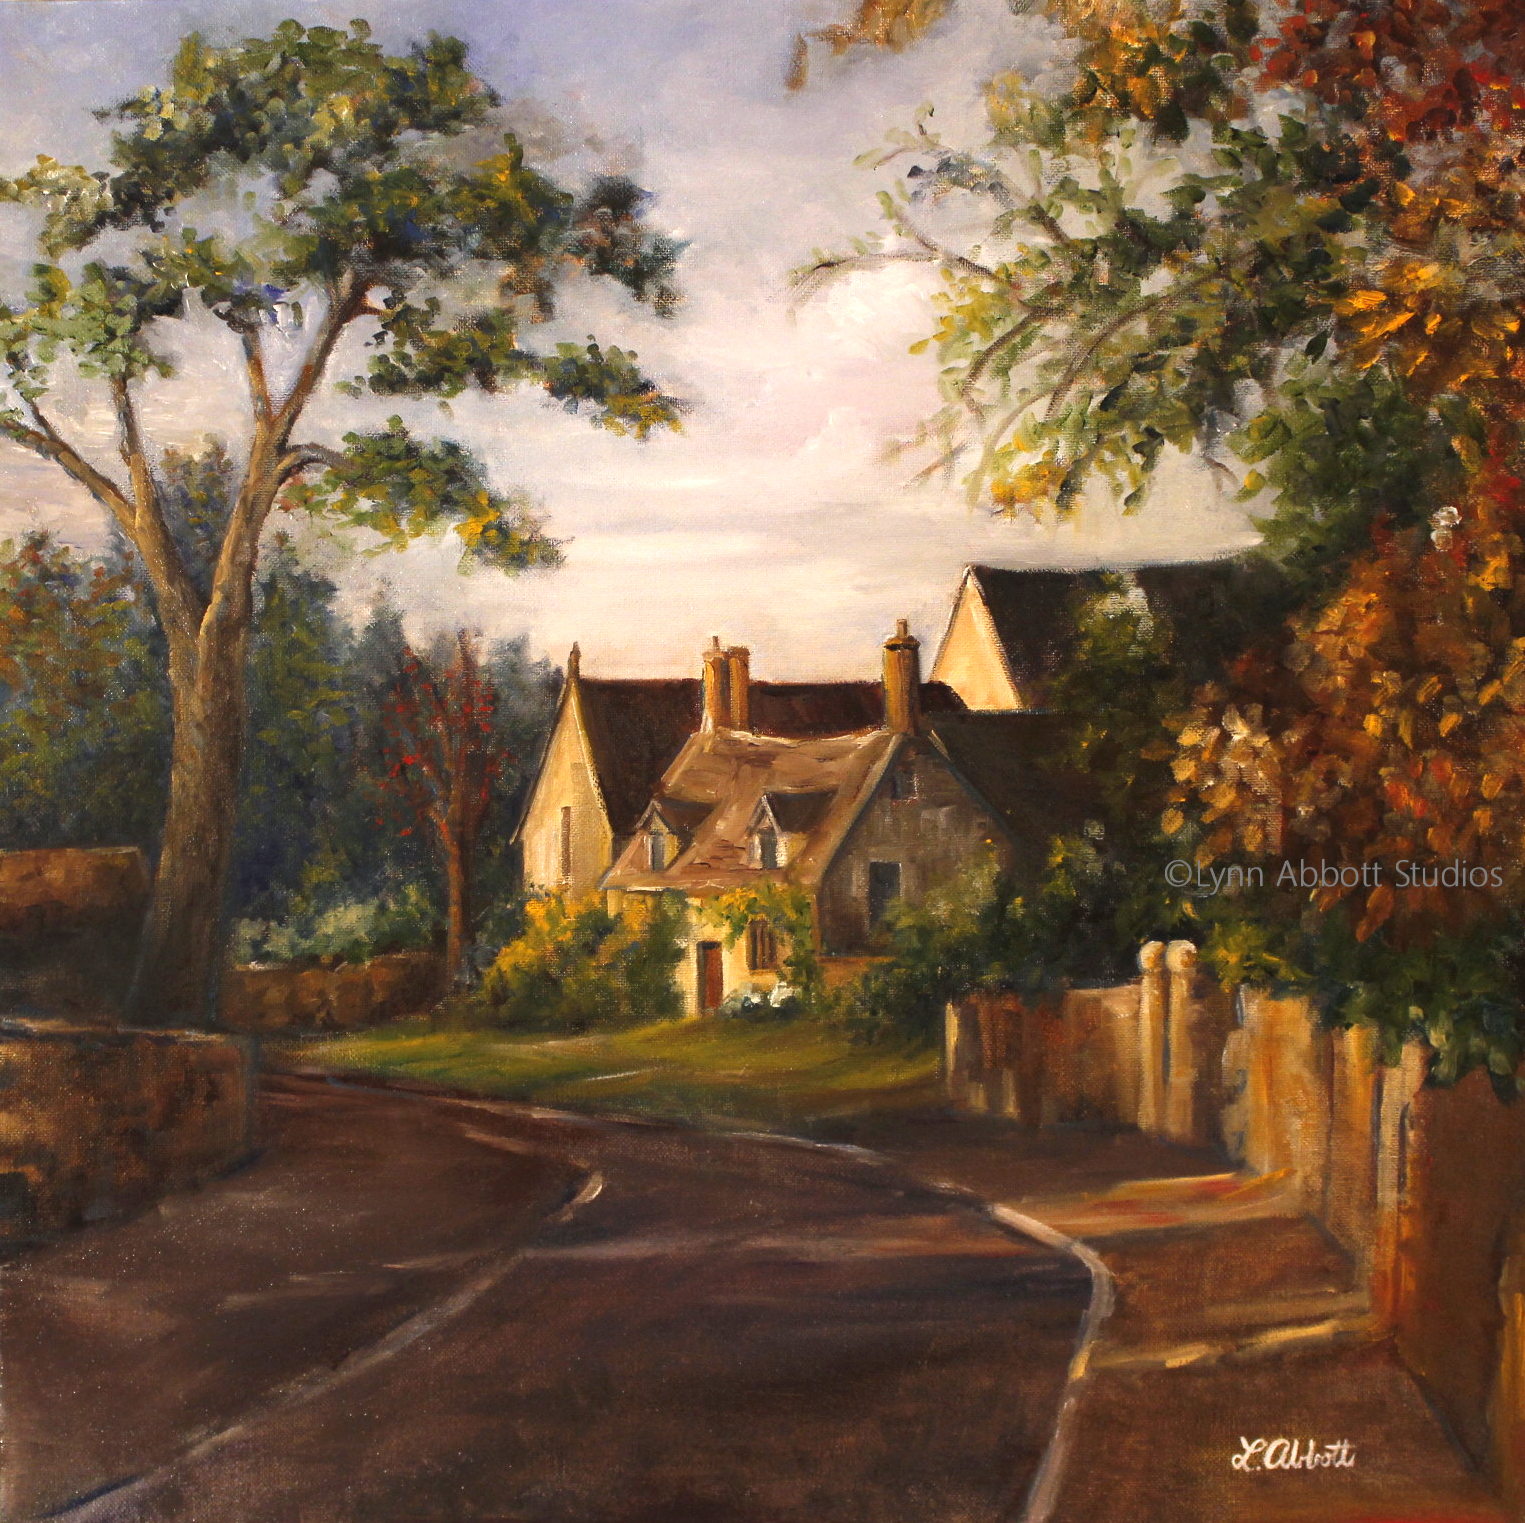 Entering the Village, Lynn Abbott